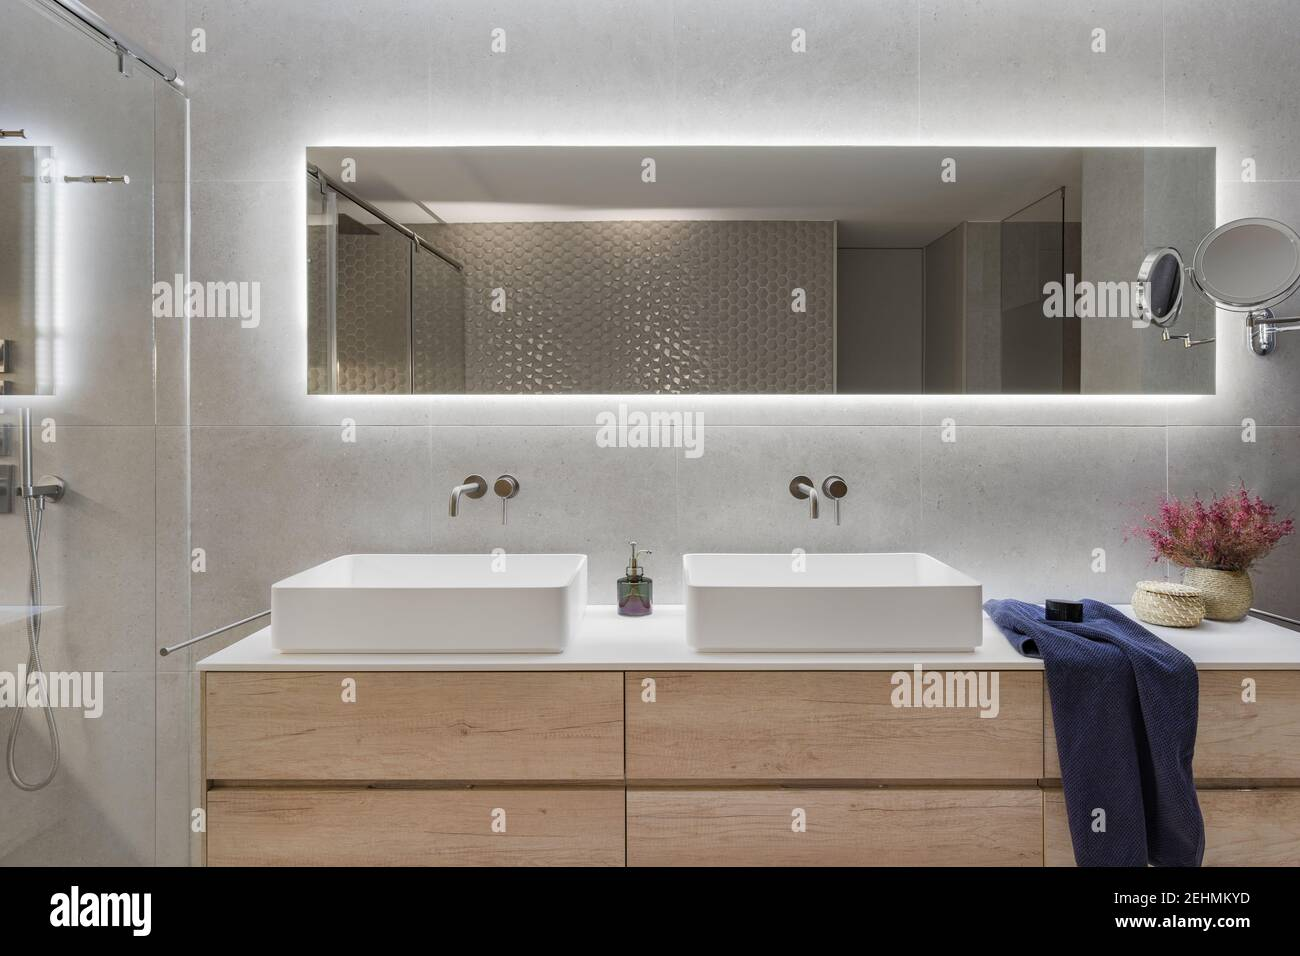 Modern Bathroom Interior With A Wooden Shelf Two White Sinks And Big Mirror Dark Blue Towel And Flowers For Decoration Stock Photo Alamy